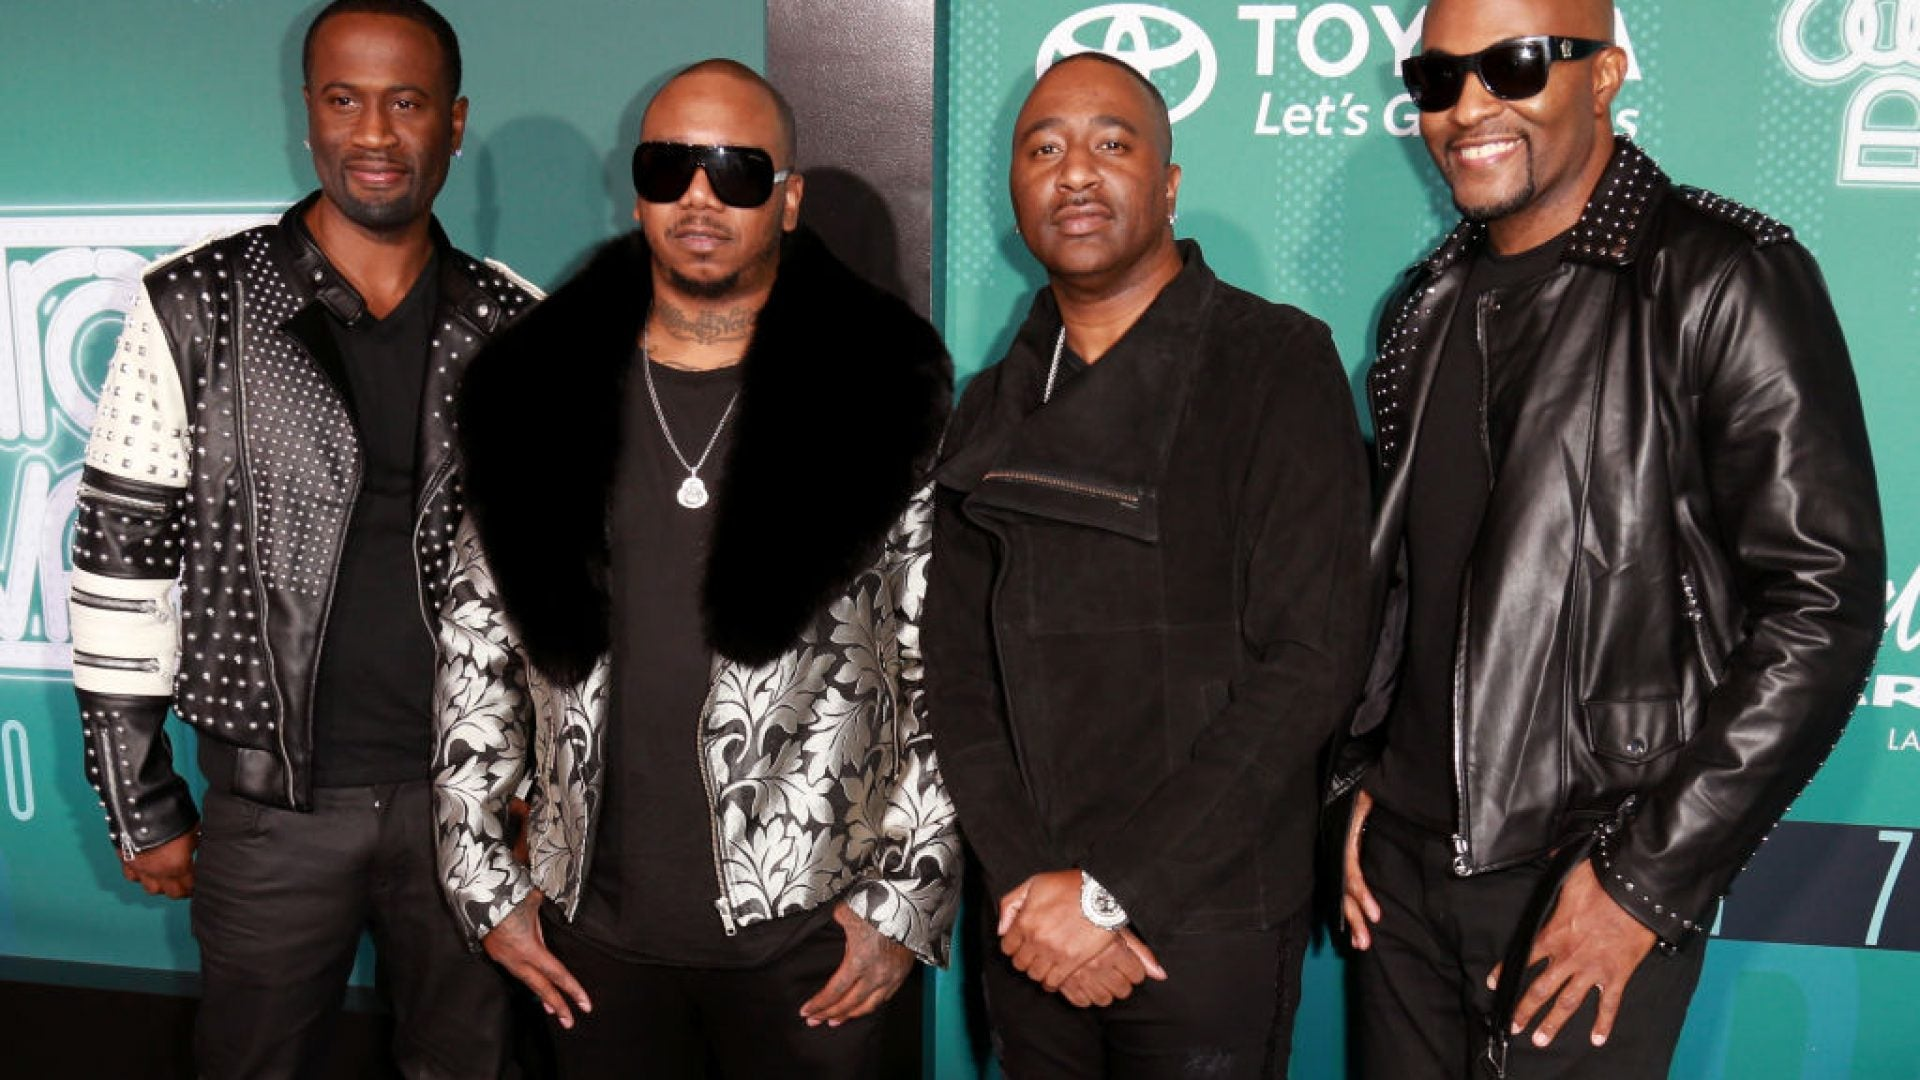 Could Jagged Edge And 112 Do The Next Verzuz Battle?